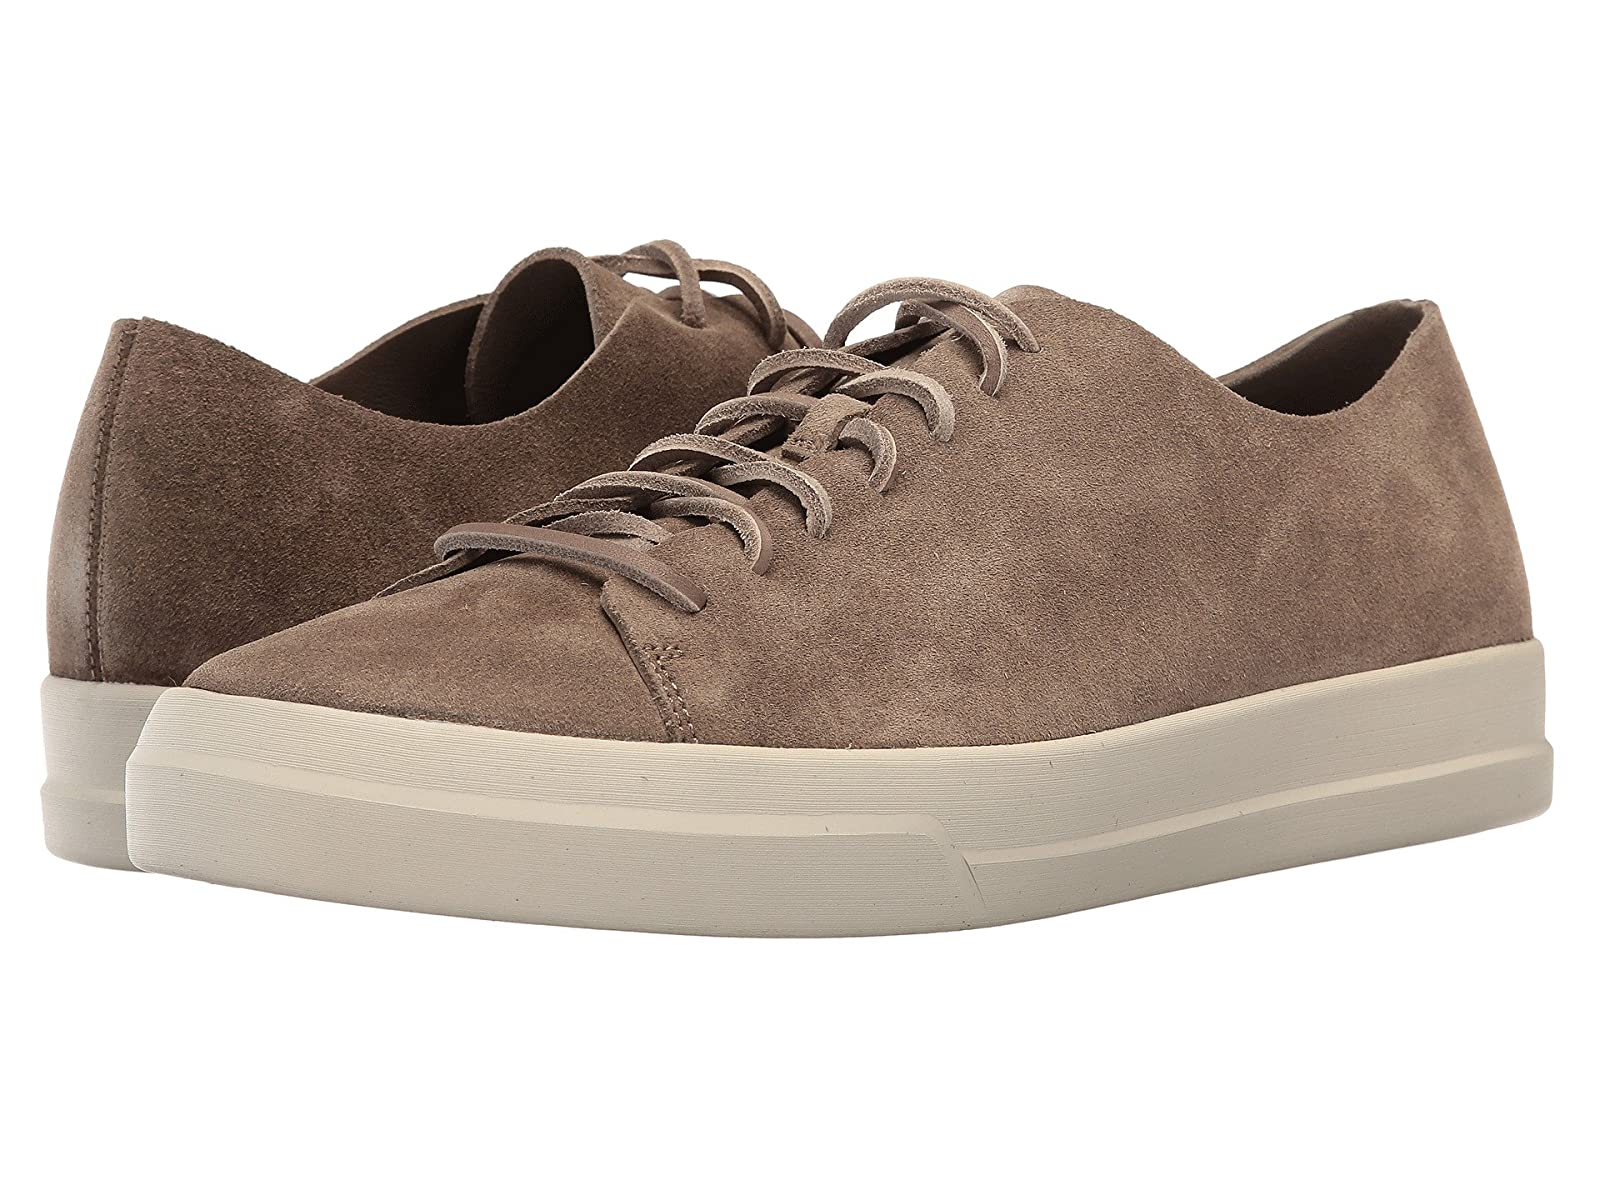 Vince Copeland Suede Suede Suede Sneaker/recommended today/Mr/Ms 96790e